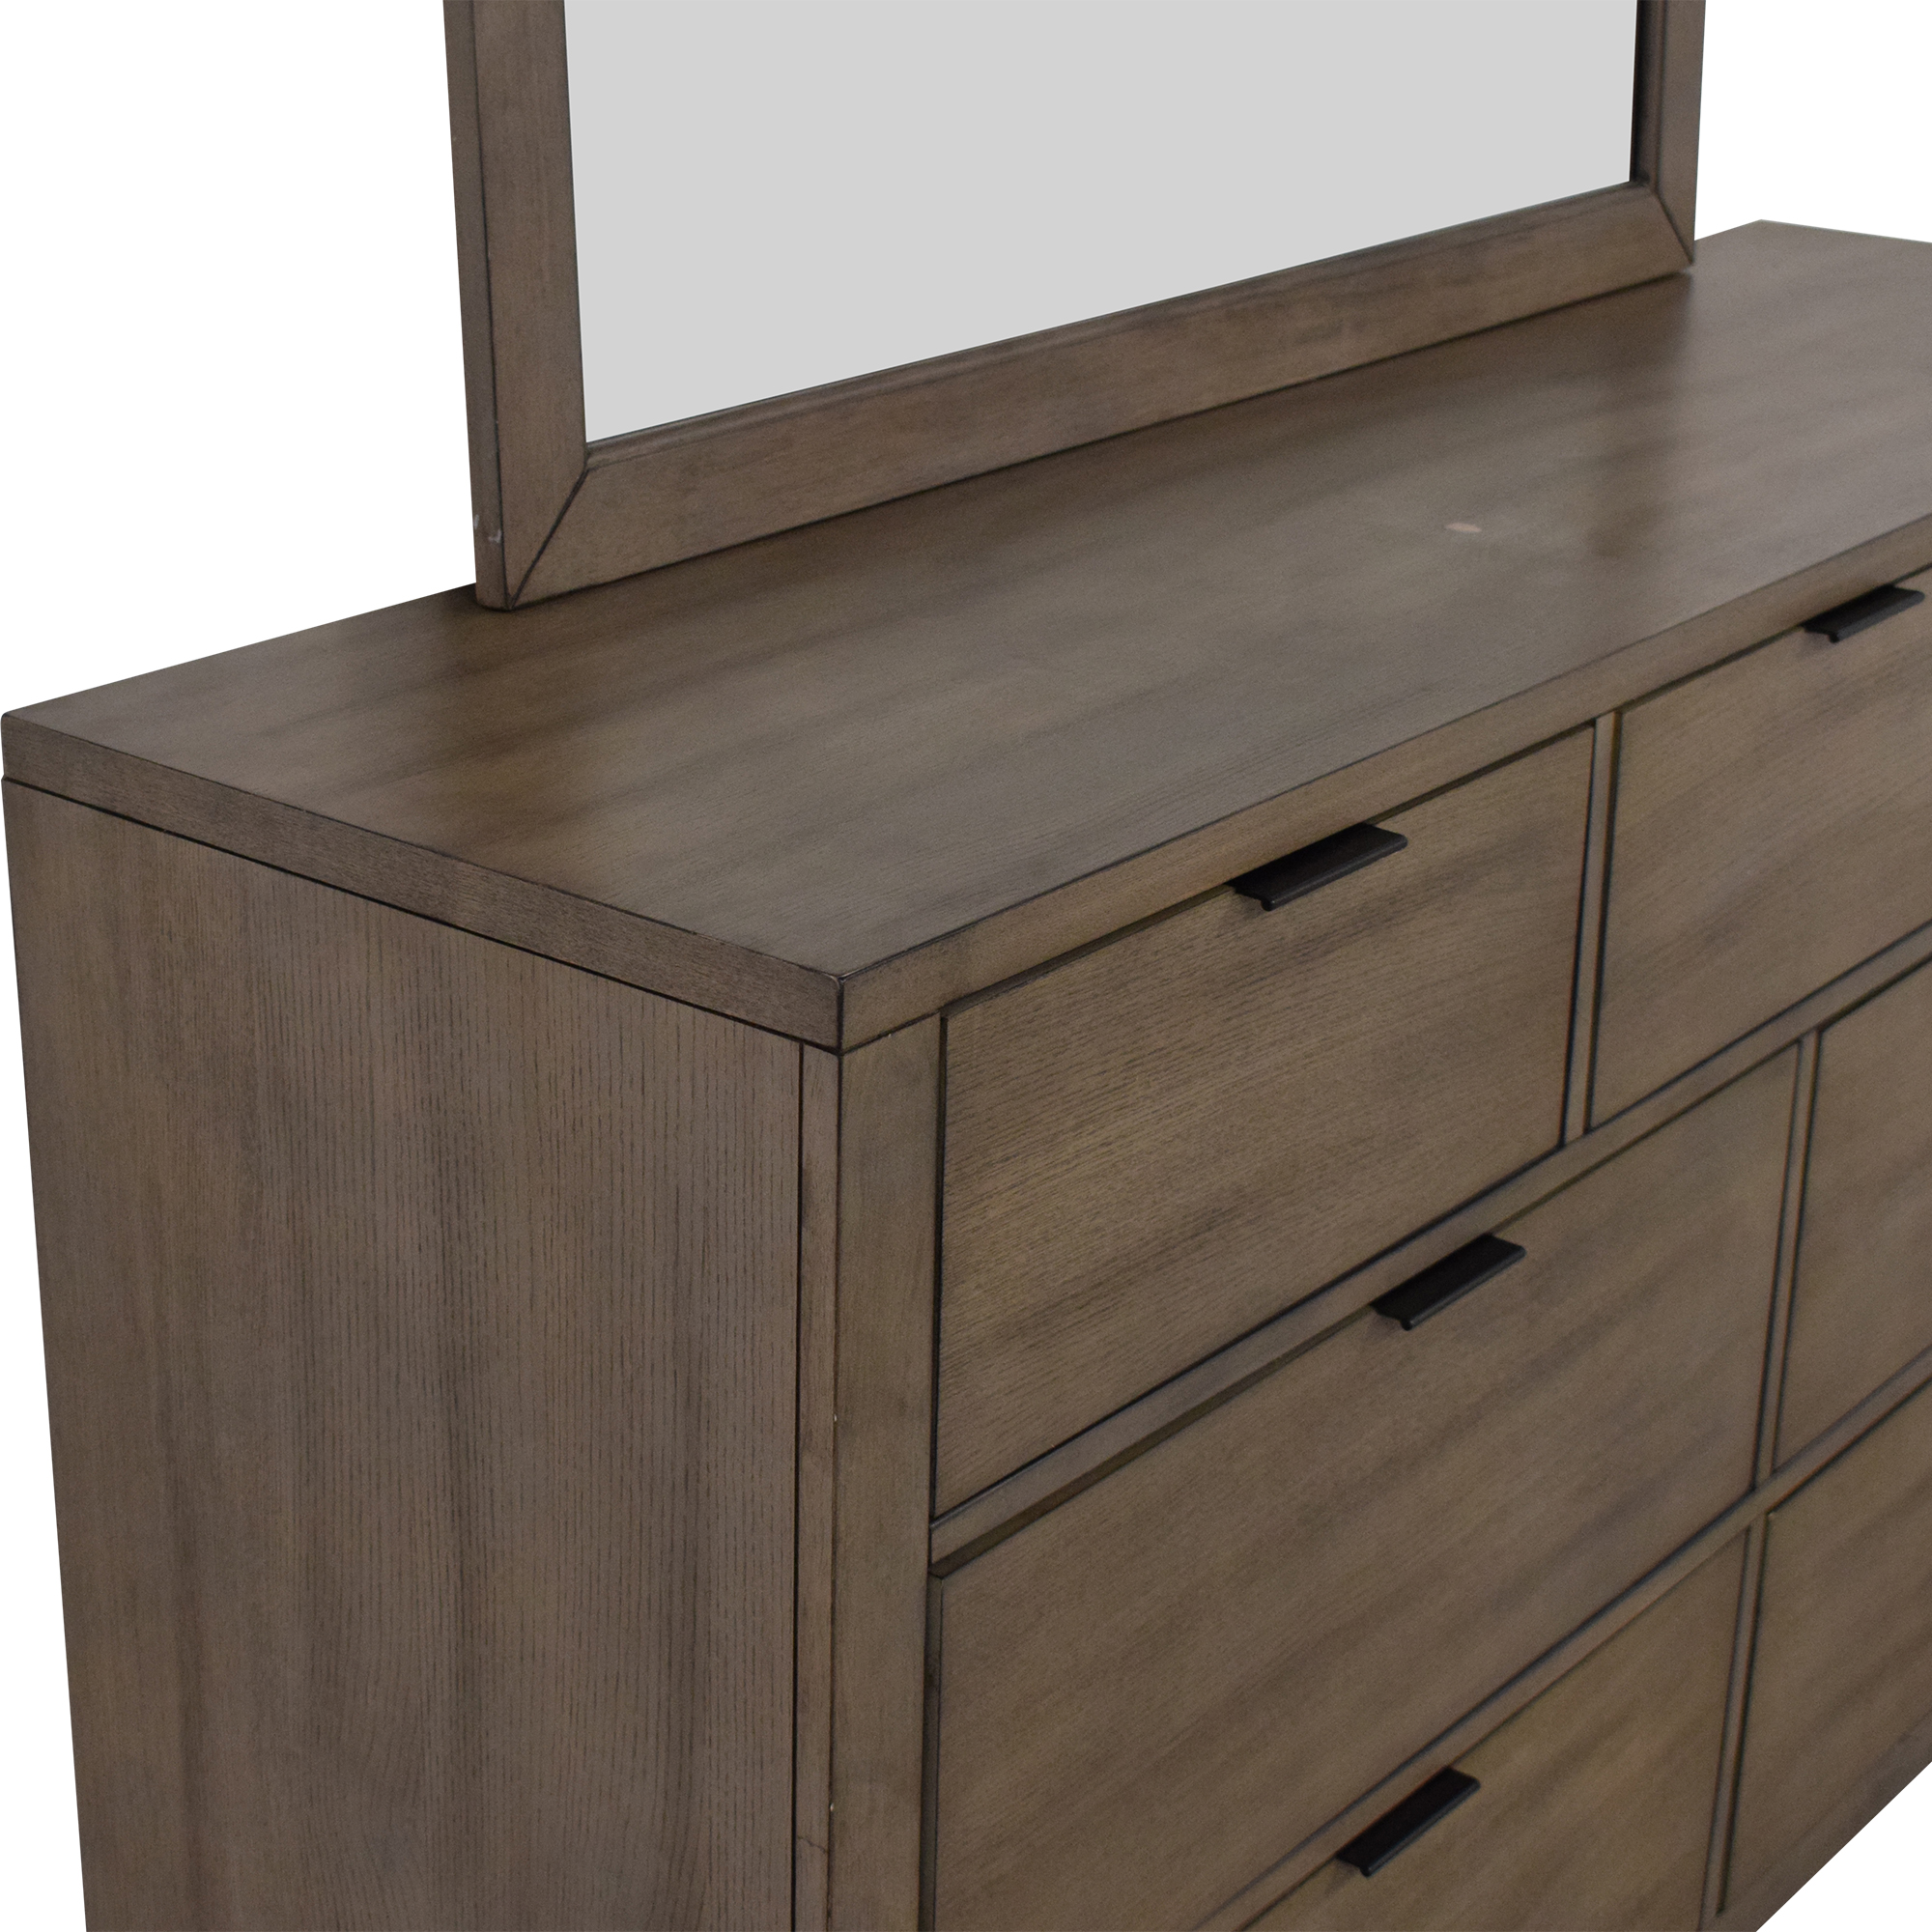 Home Meridian Home Meridian Tribeca Dresser and Landscape Mirror second hand